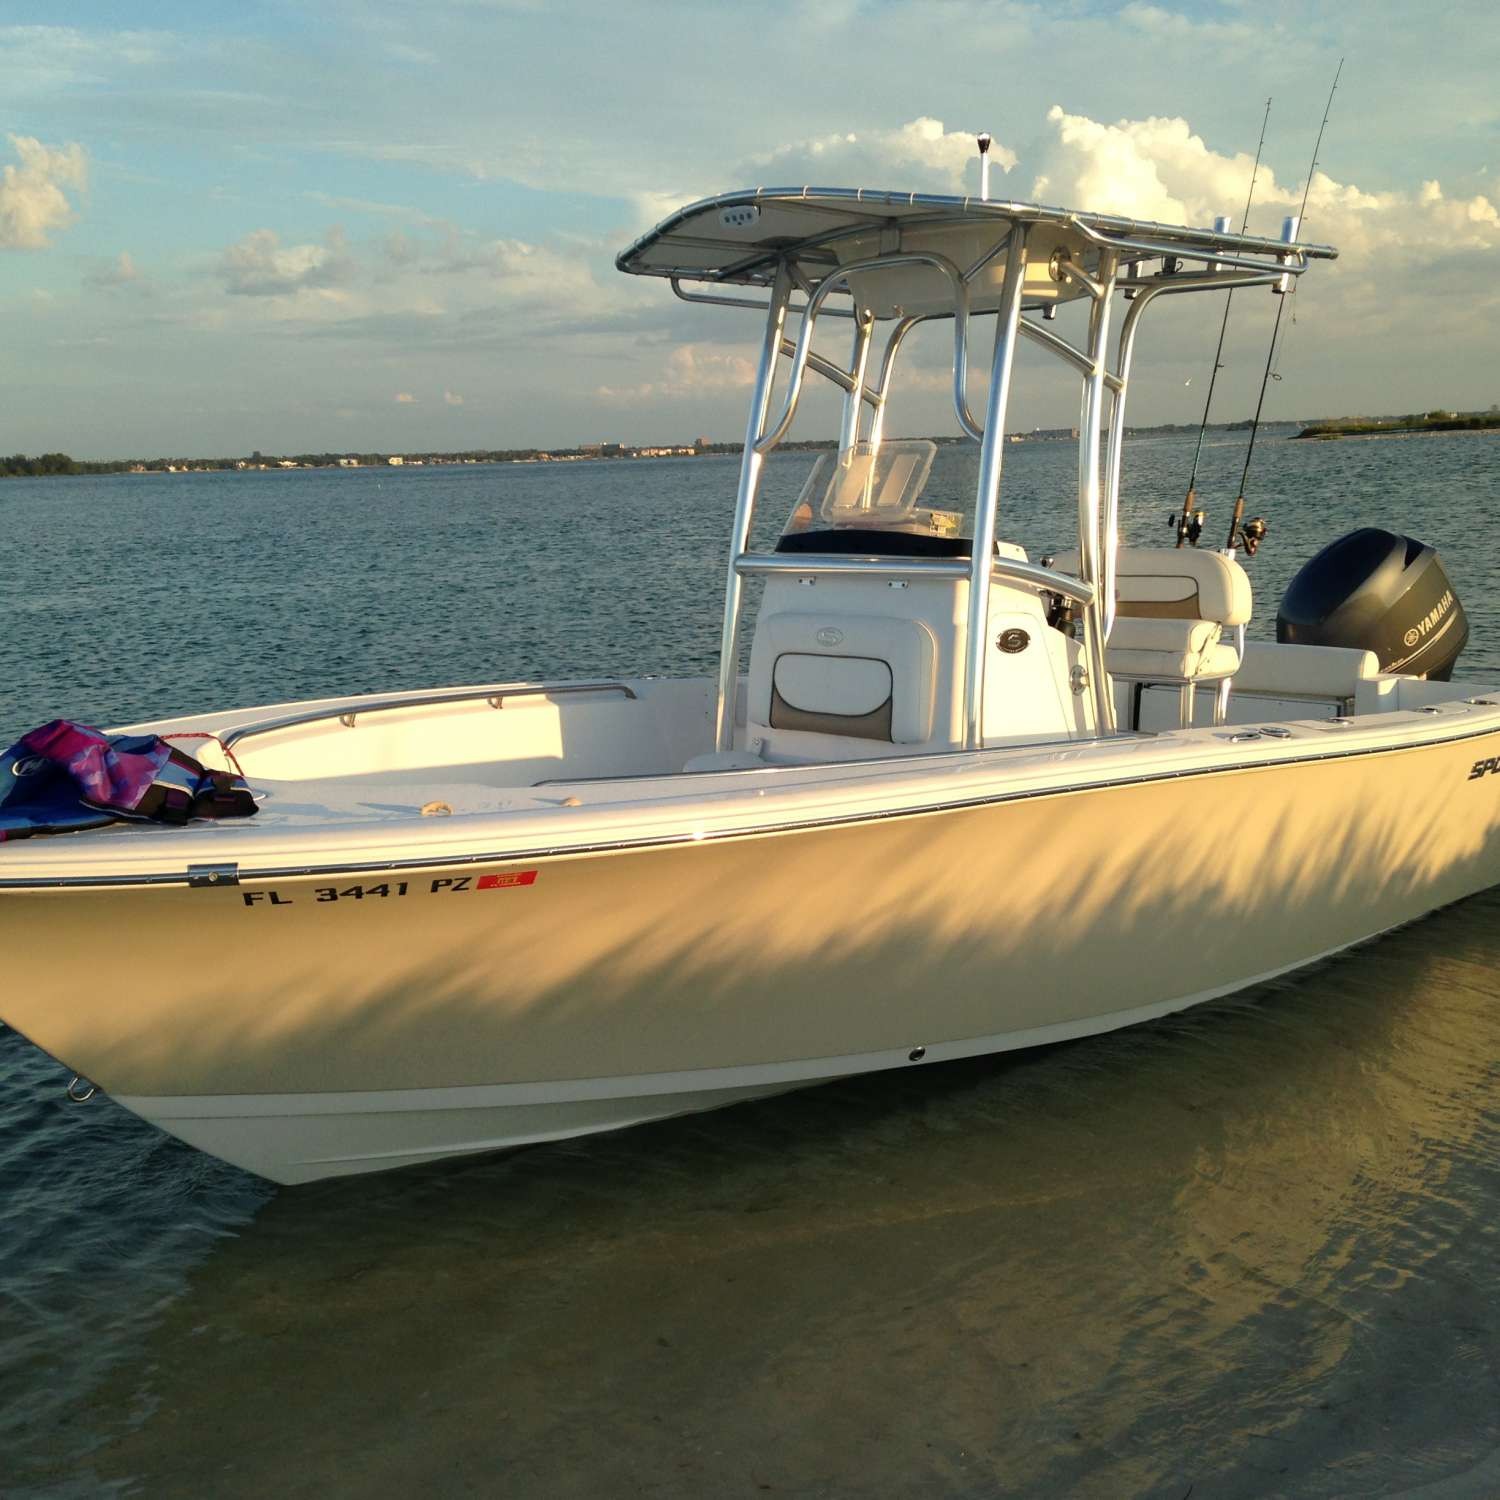 Title: Perfect Time Of Day - On board their Sportsman Open 212 Center Console - Location: Safety Harbor, Florida. Participating in the Photo Contest #SportsmanApril2016